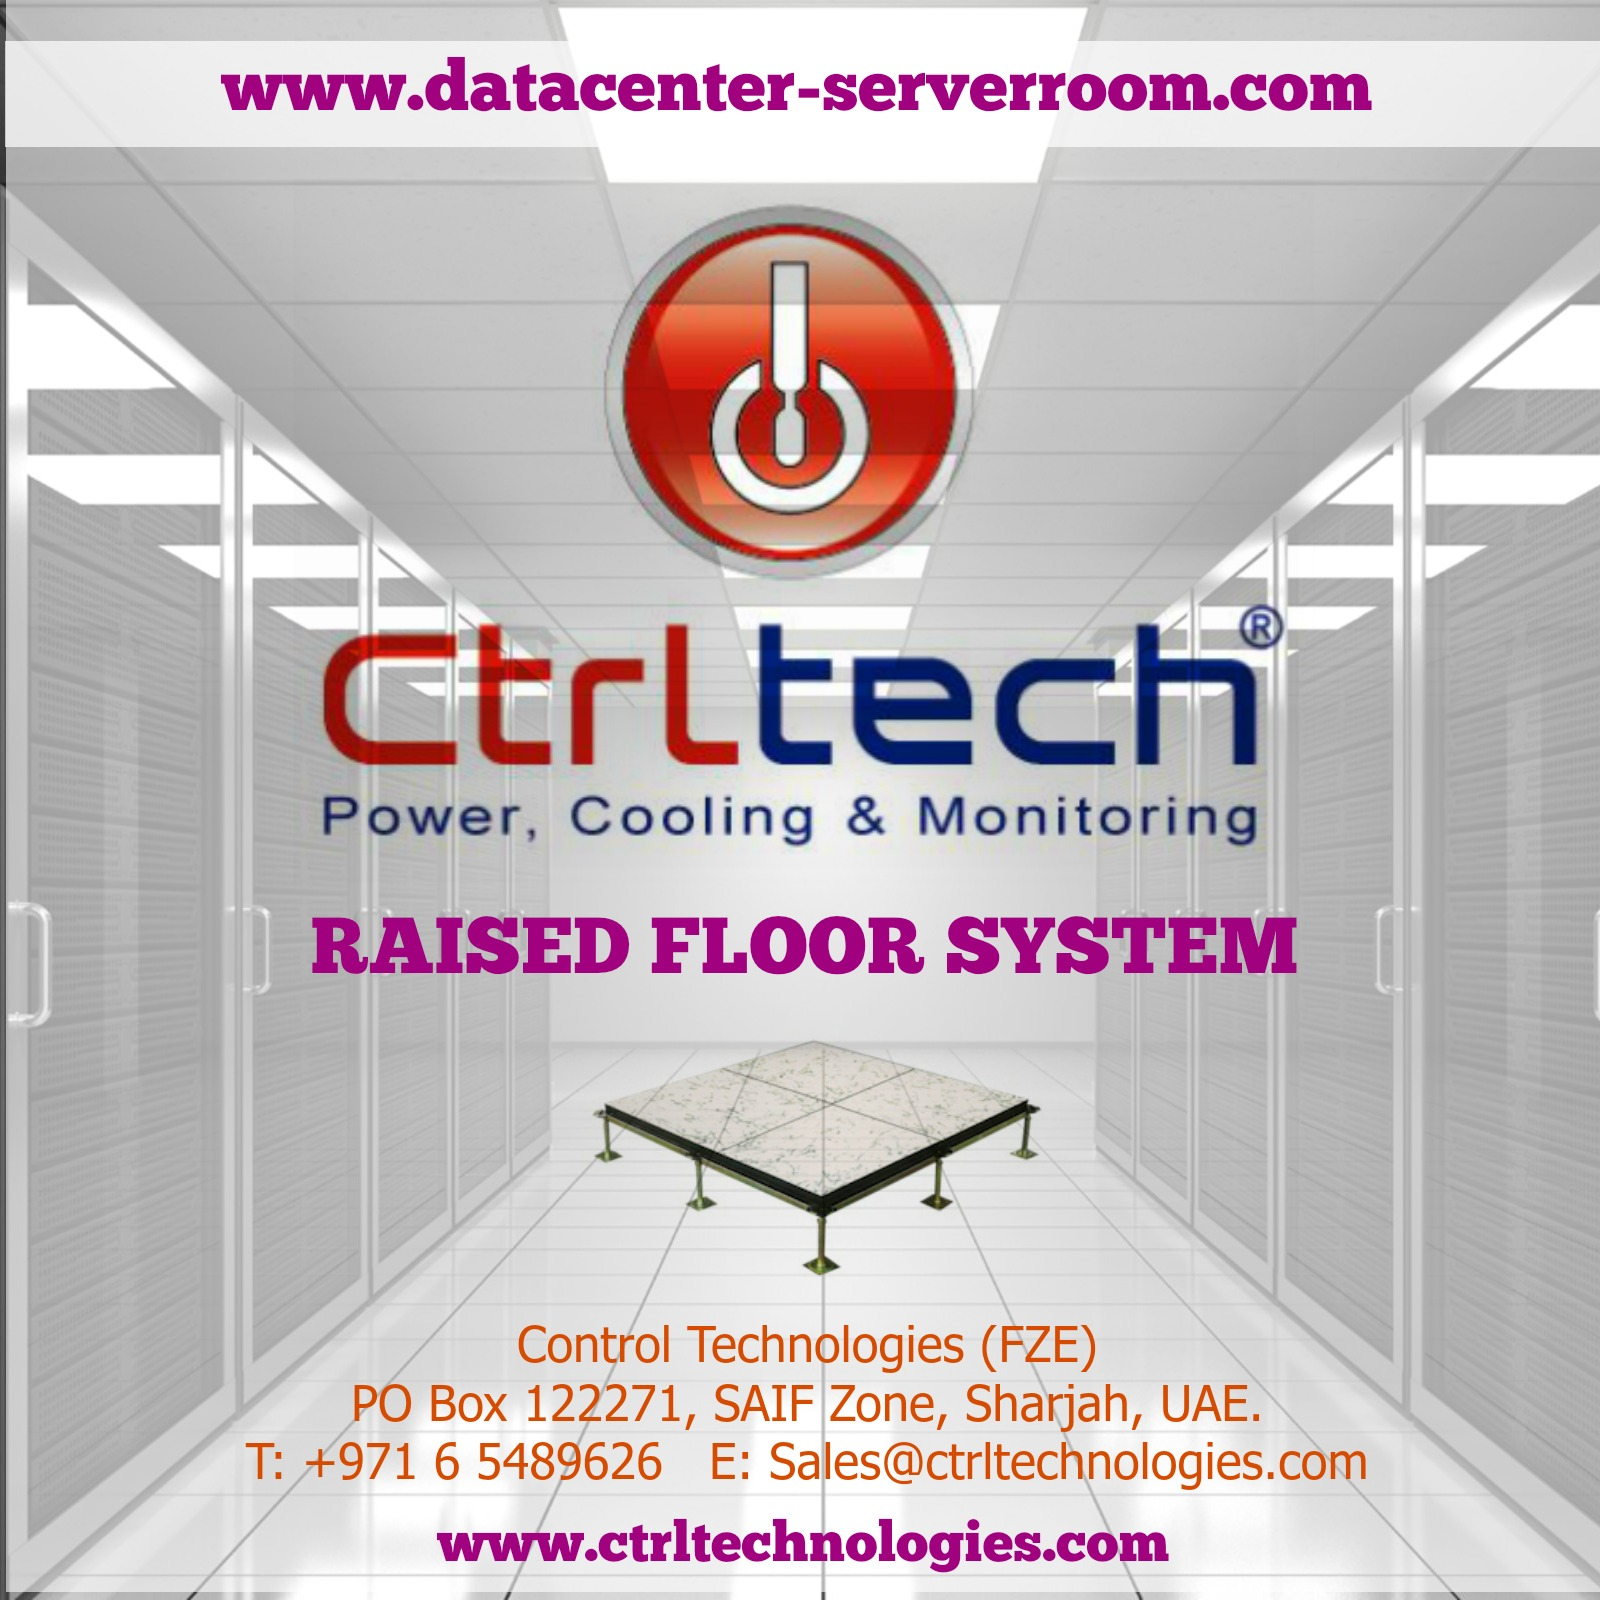 Raised floor or access floor for data center (datacenter) or server room.jpg